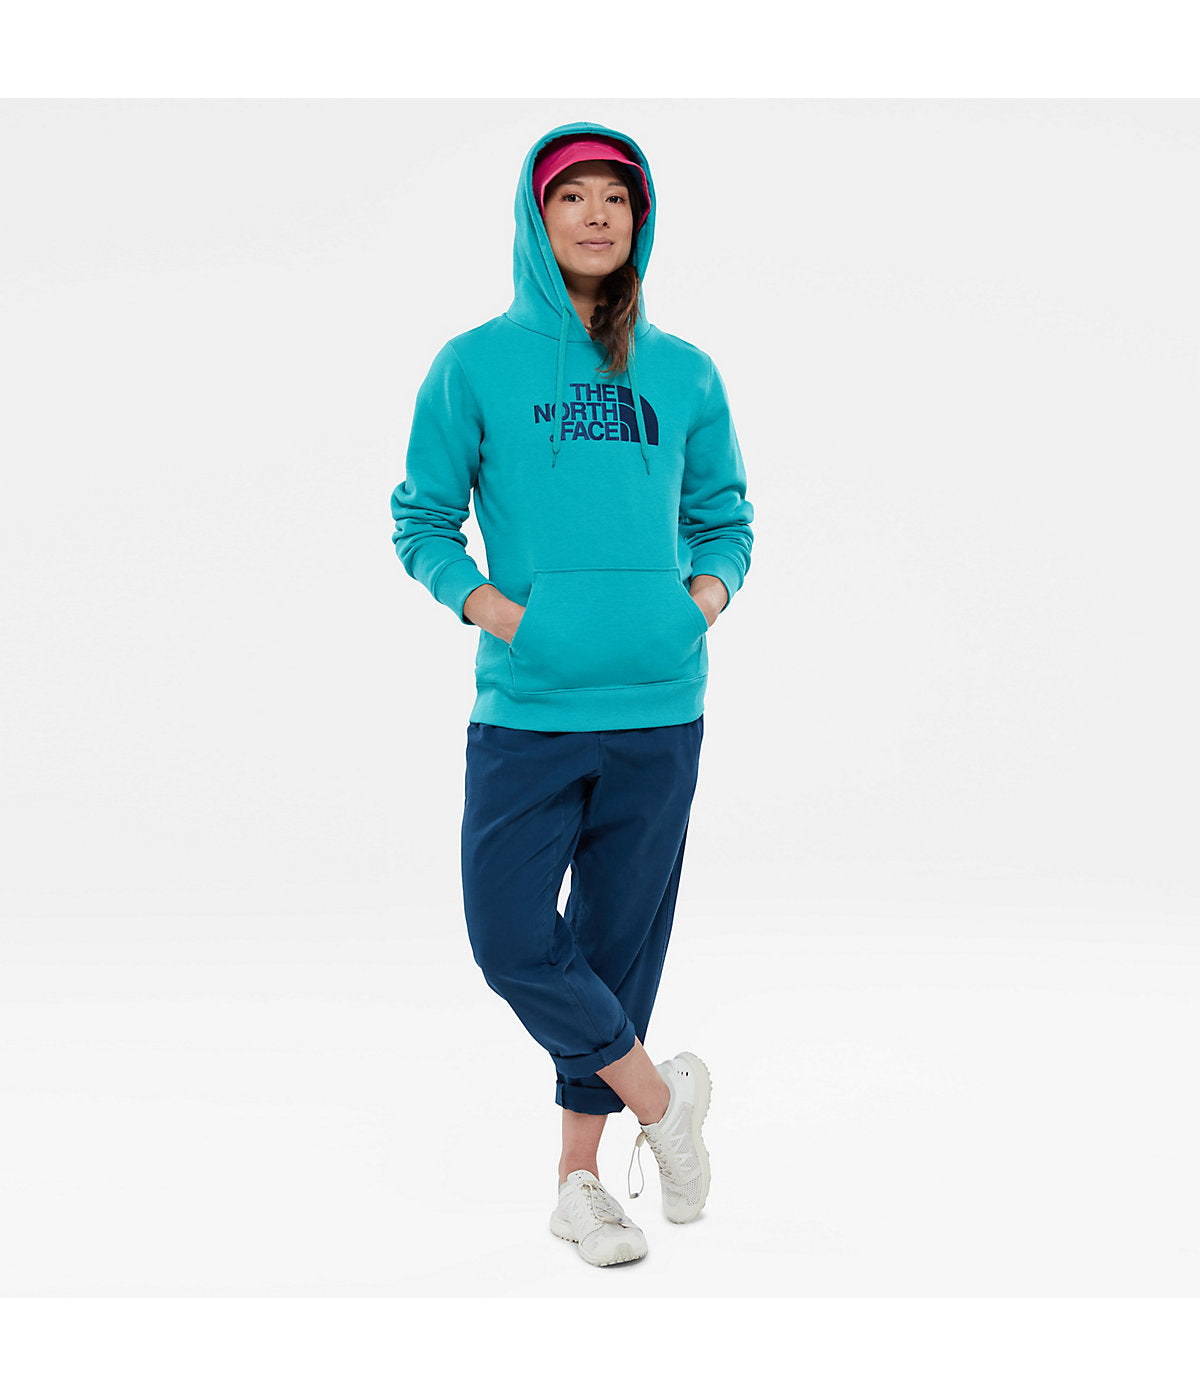 e642a22cb The North Face Womens Drew Peak Pullover Hoodie